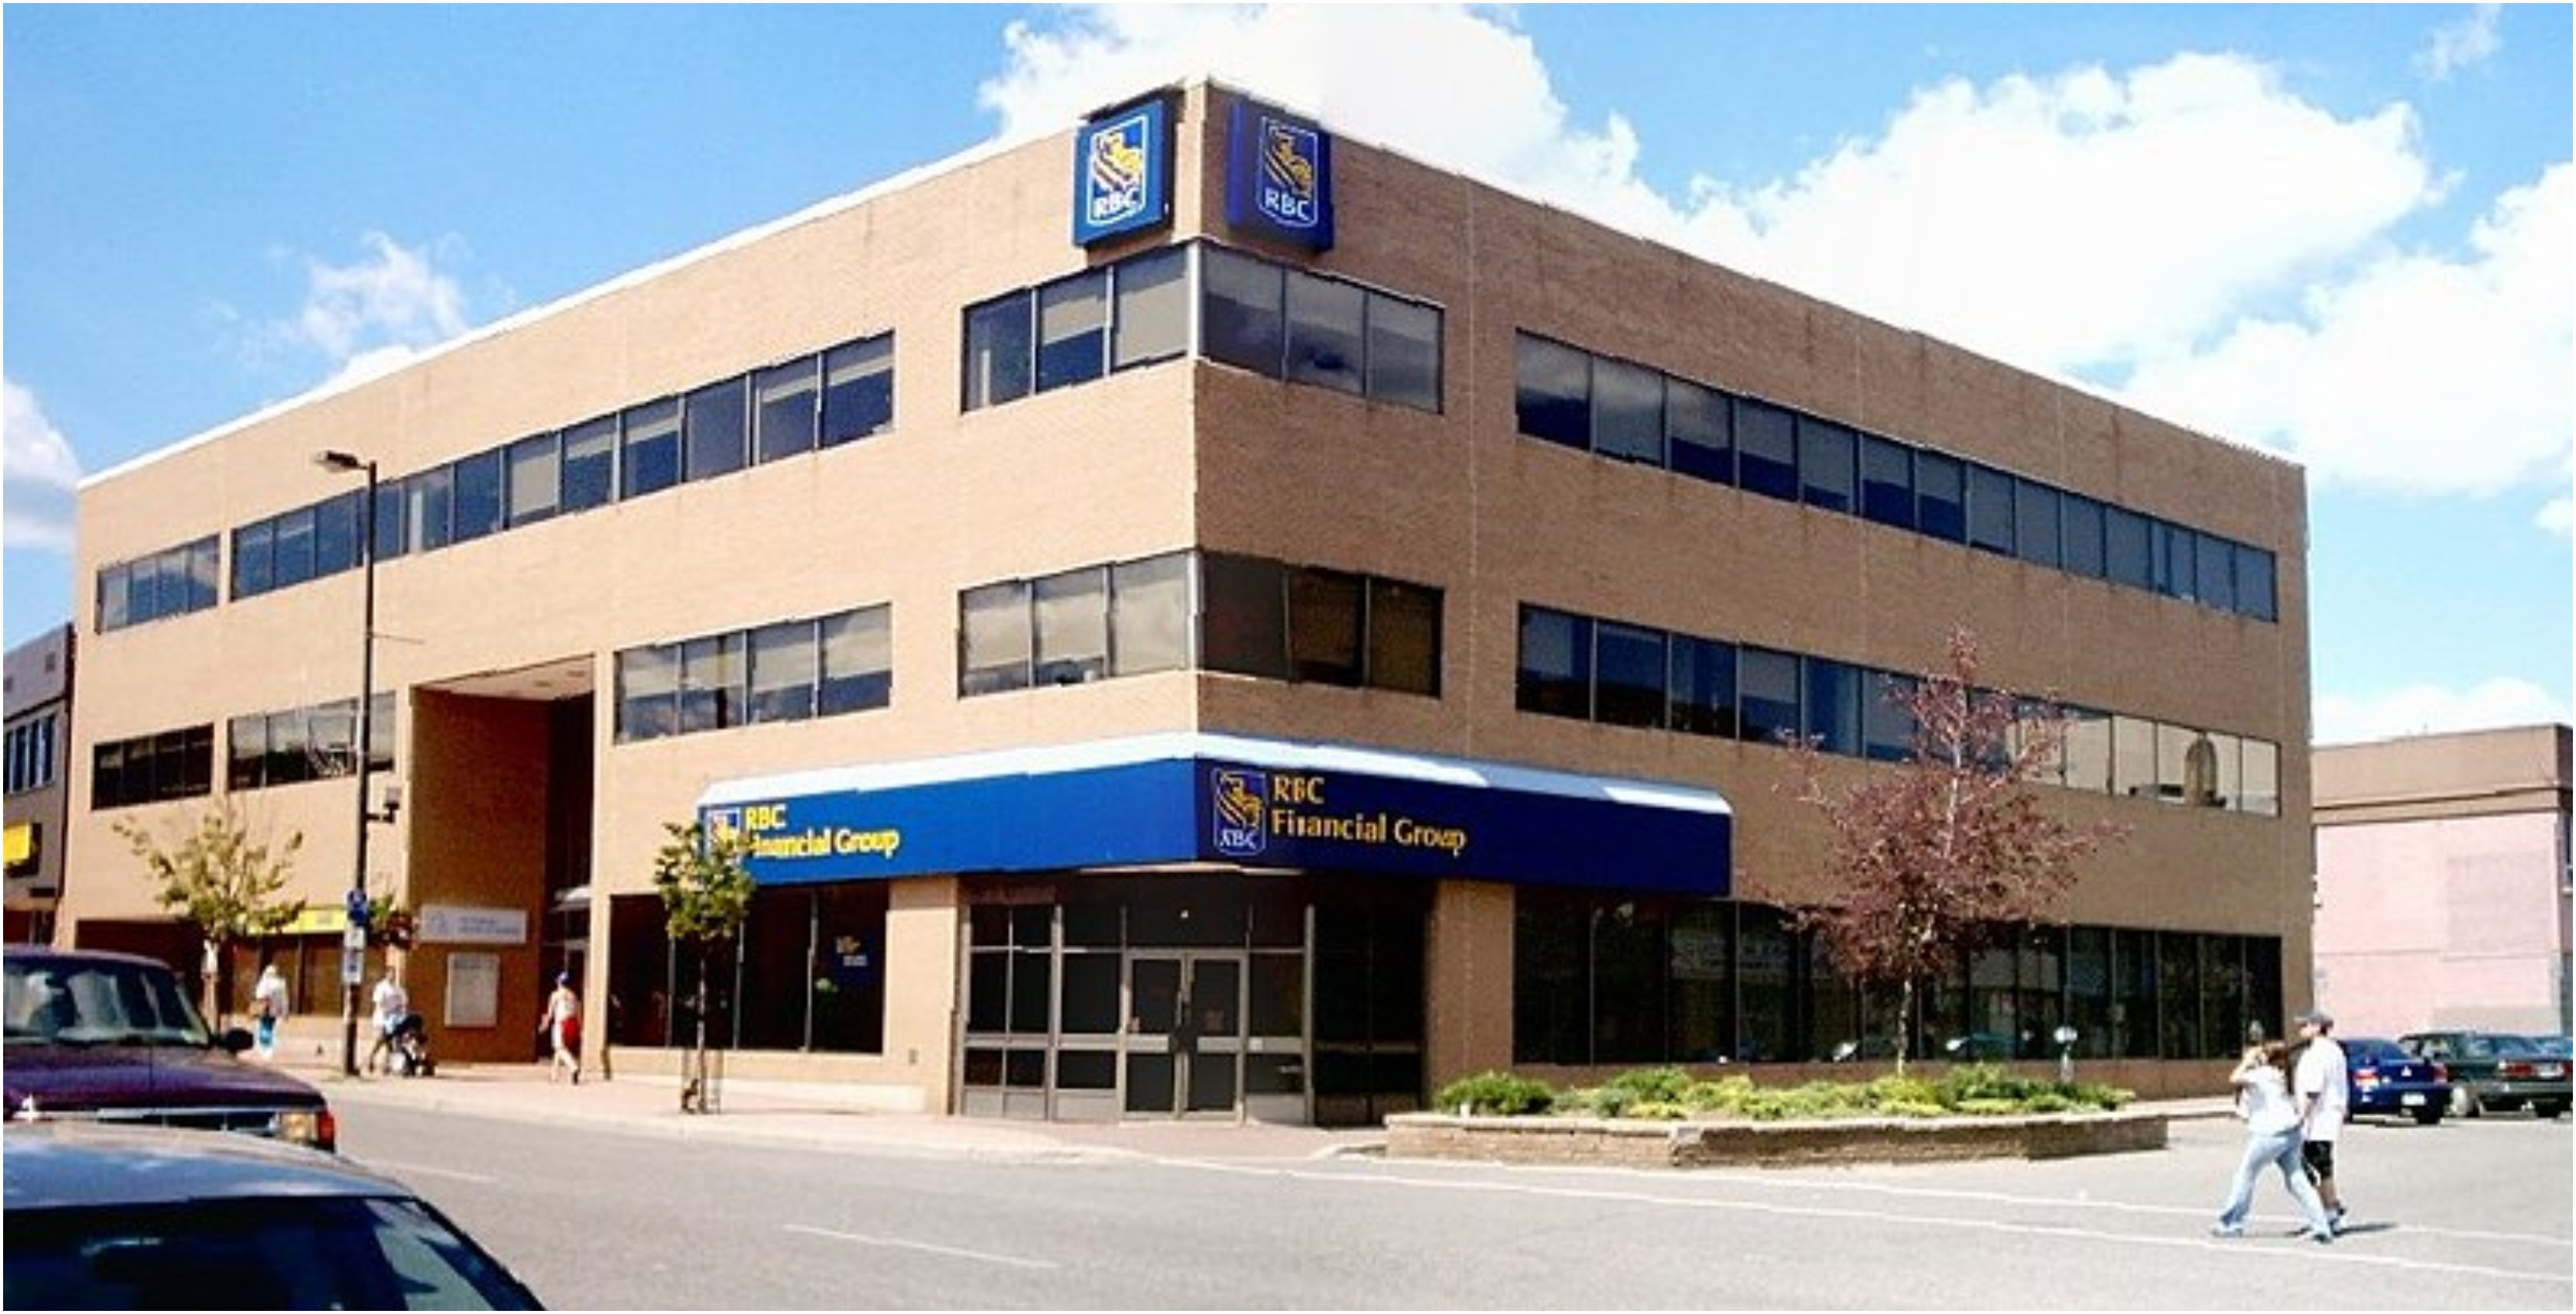 RBC denies report claiming bank had access to Facebook users' private messages